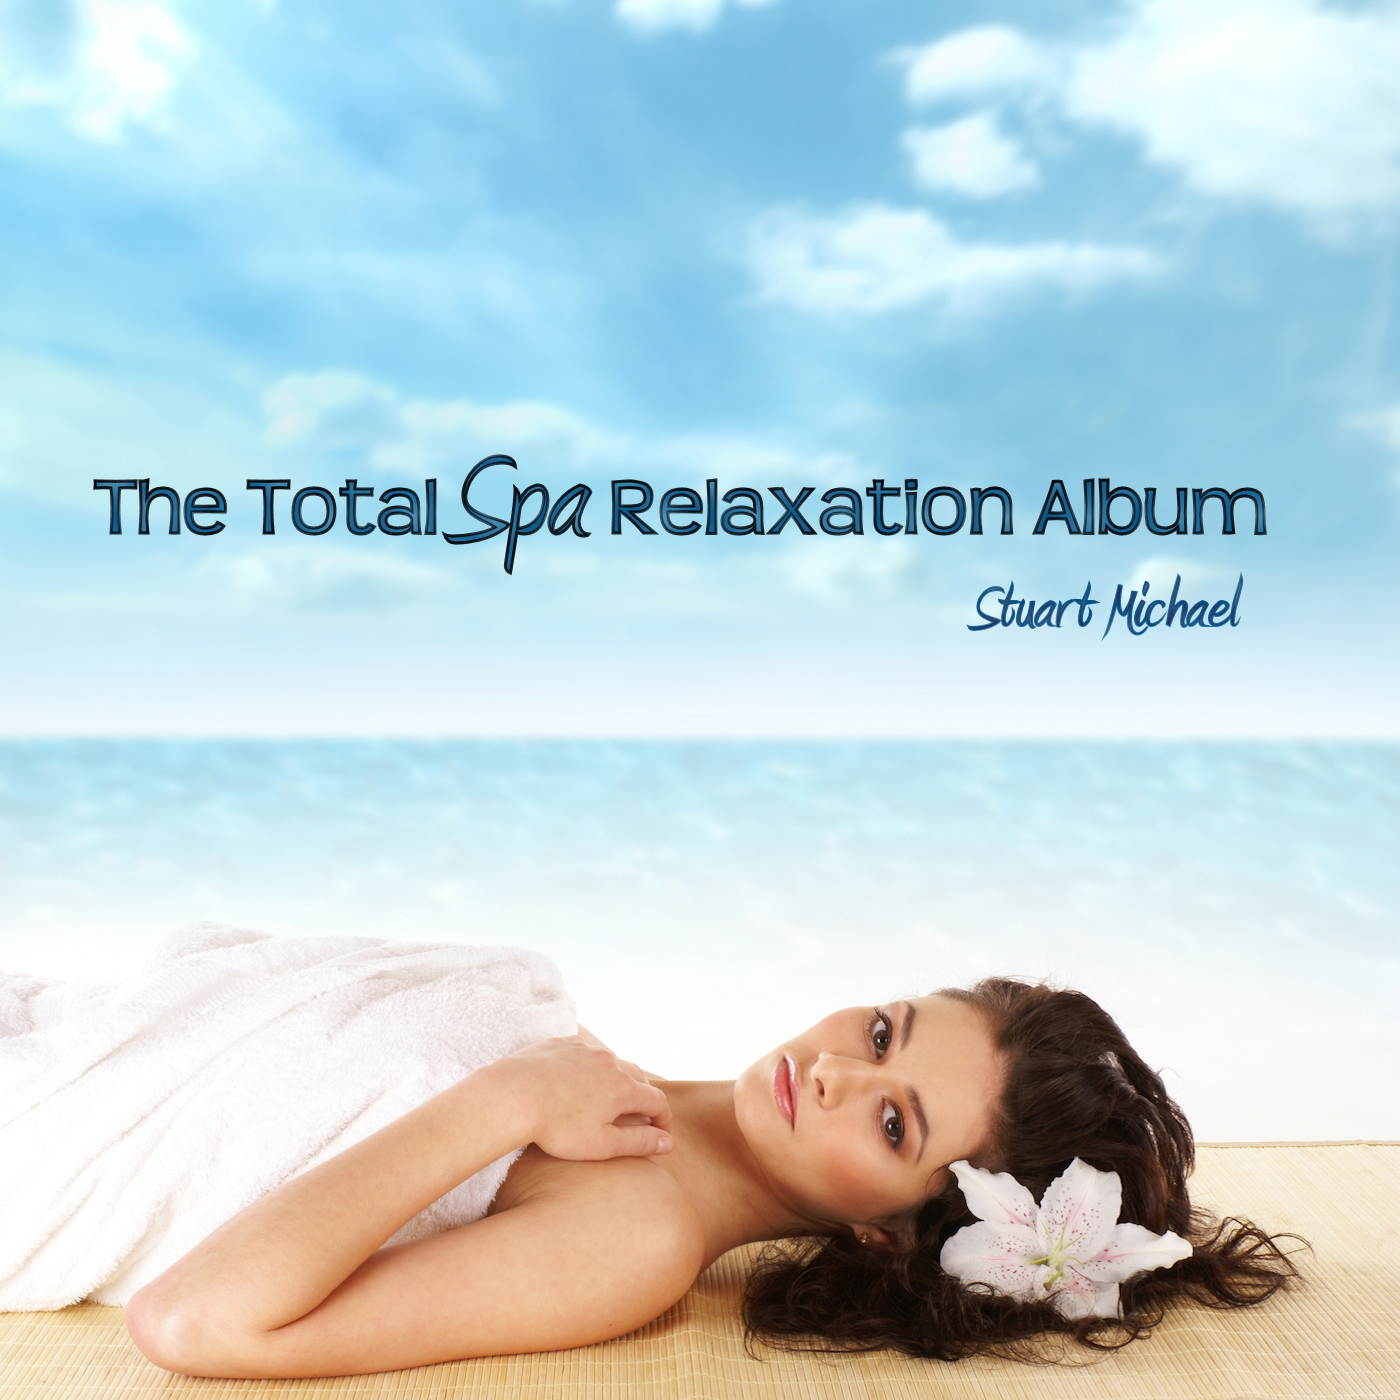 The Total Spa Relaxation Album by Stuart Michael